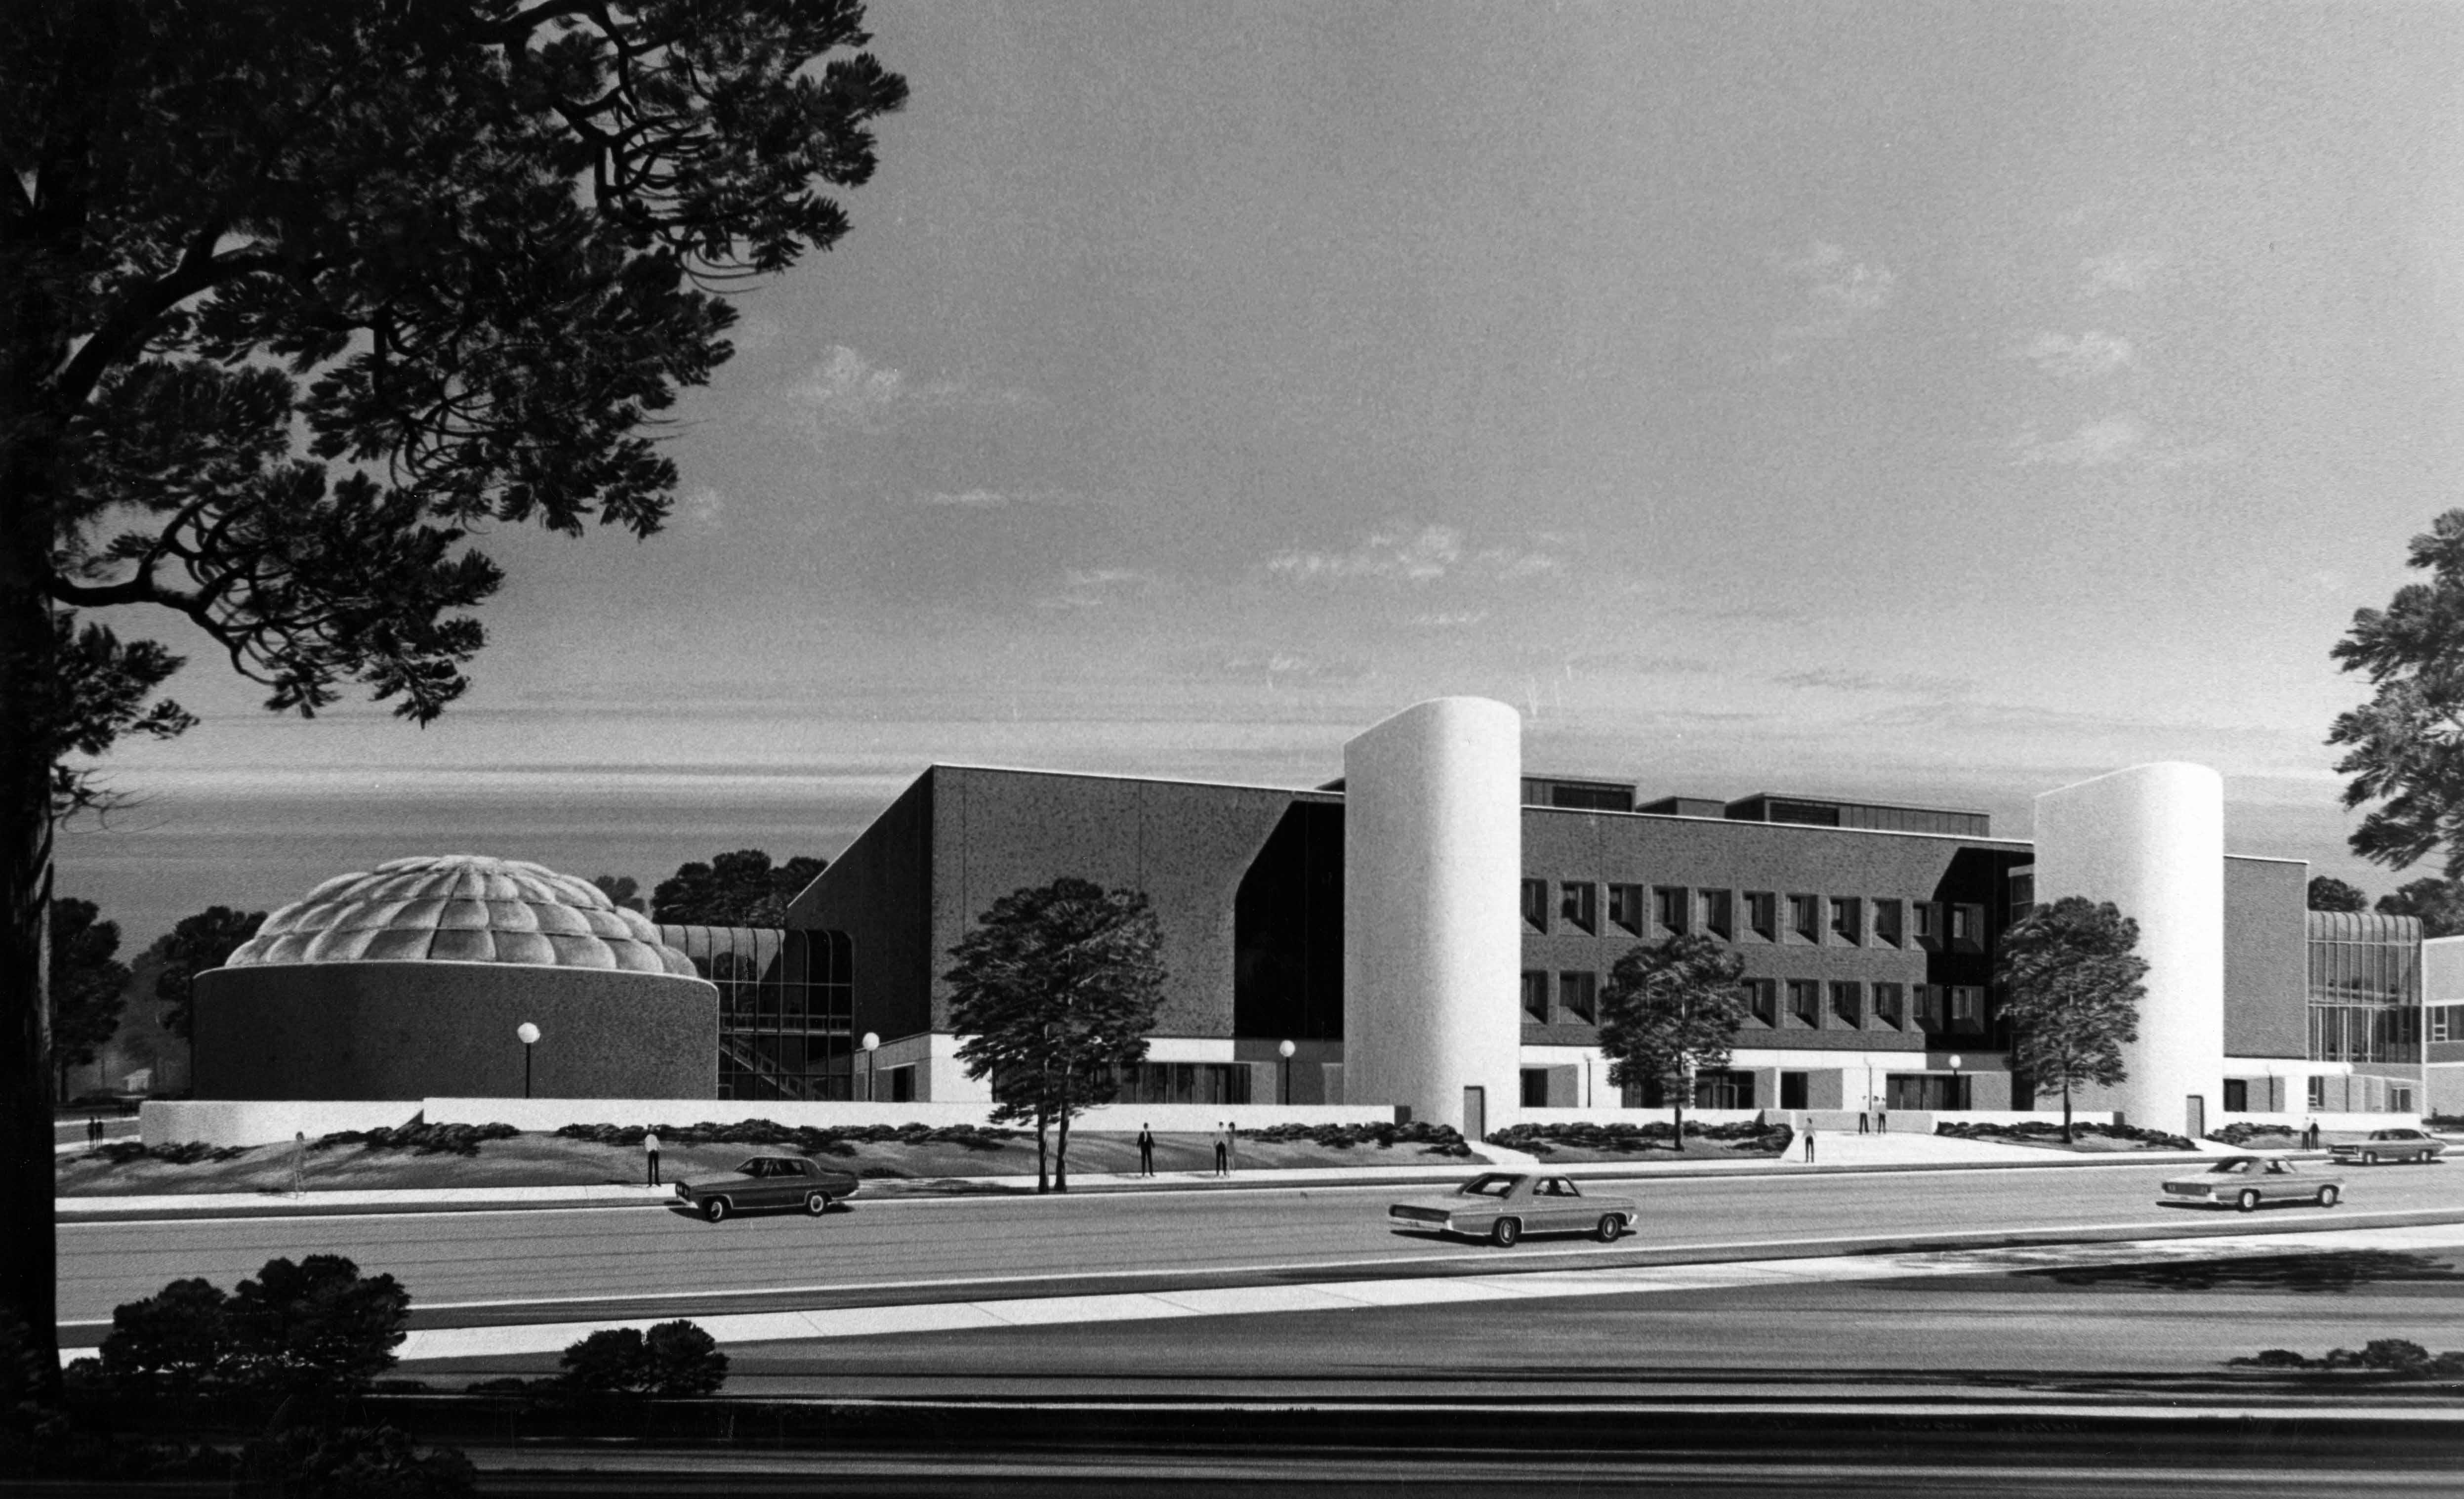 Architect's rendering of the Wick Science Building